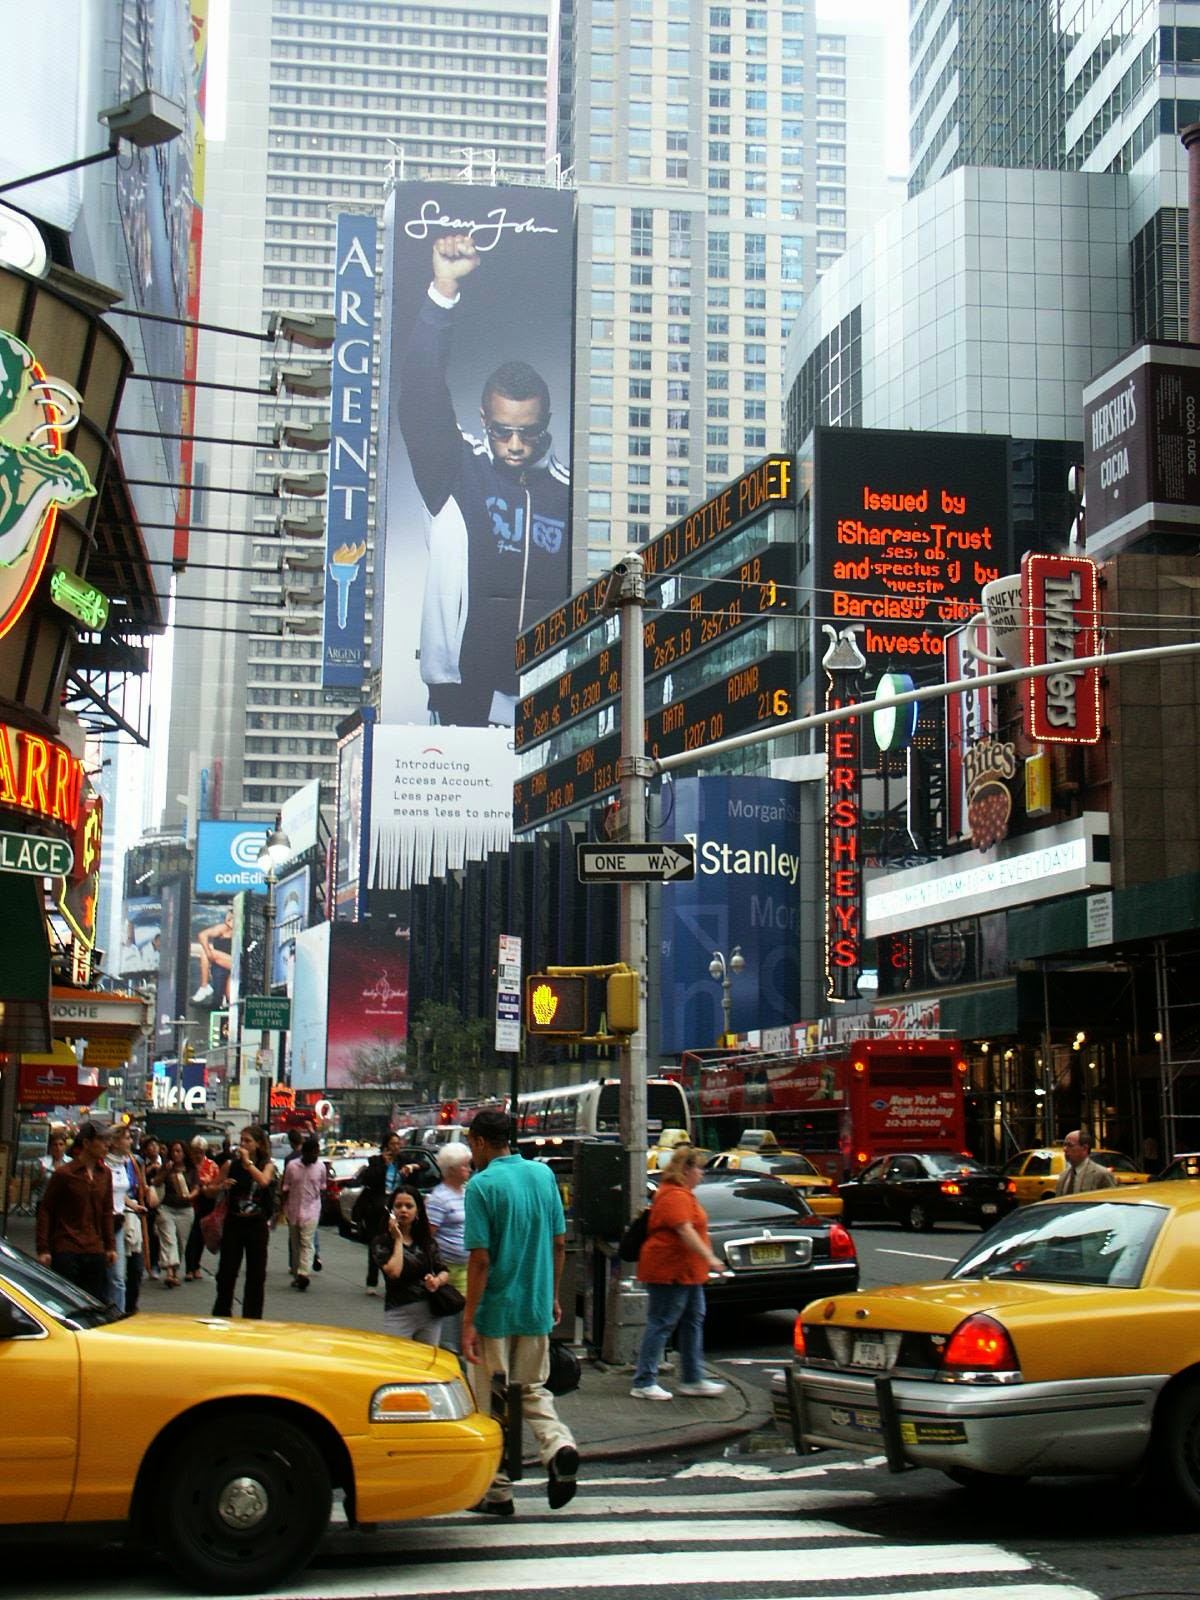 Times Square in New York City back in 2004, filled with various sized billboards and moving billboards